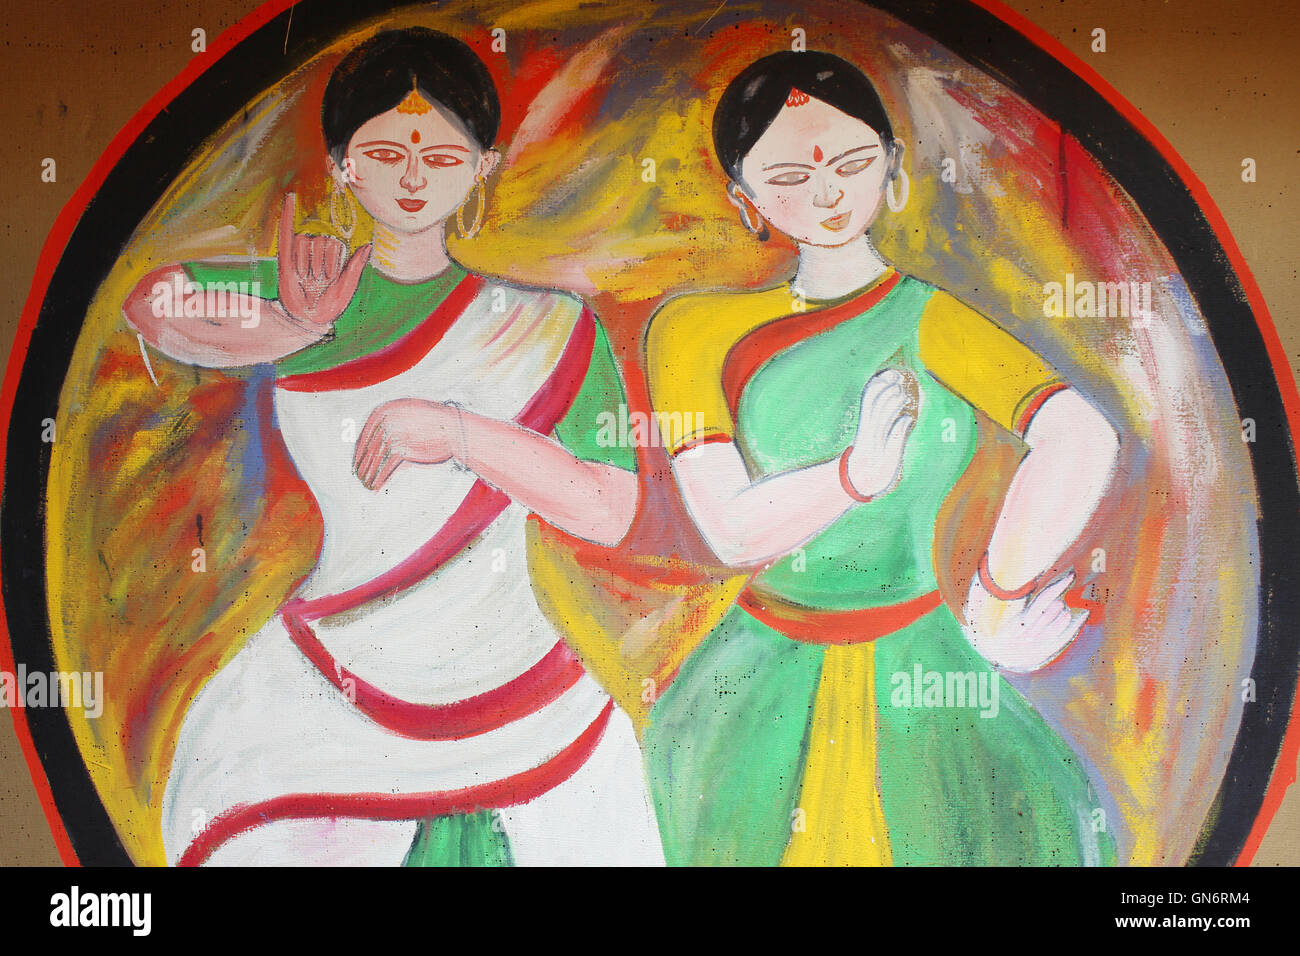 Indian Dance Stock Photos  for Abstract Painting Of Indian Dancers  110zmd